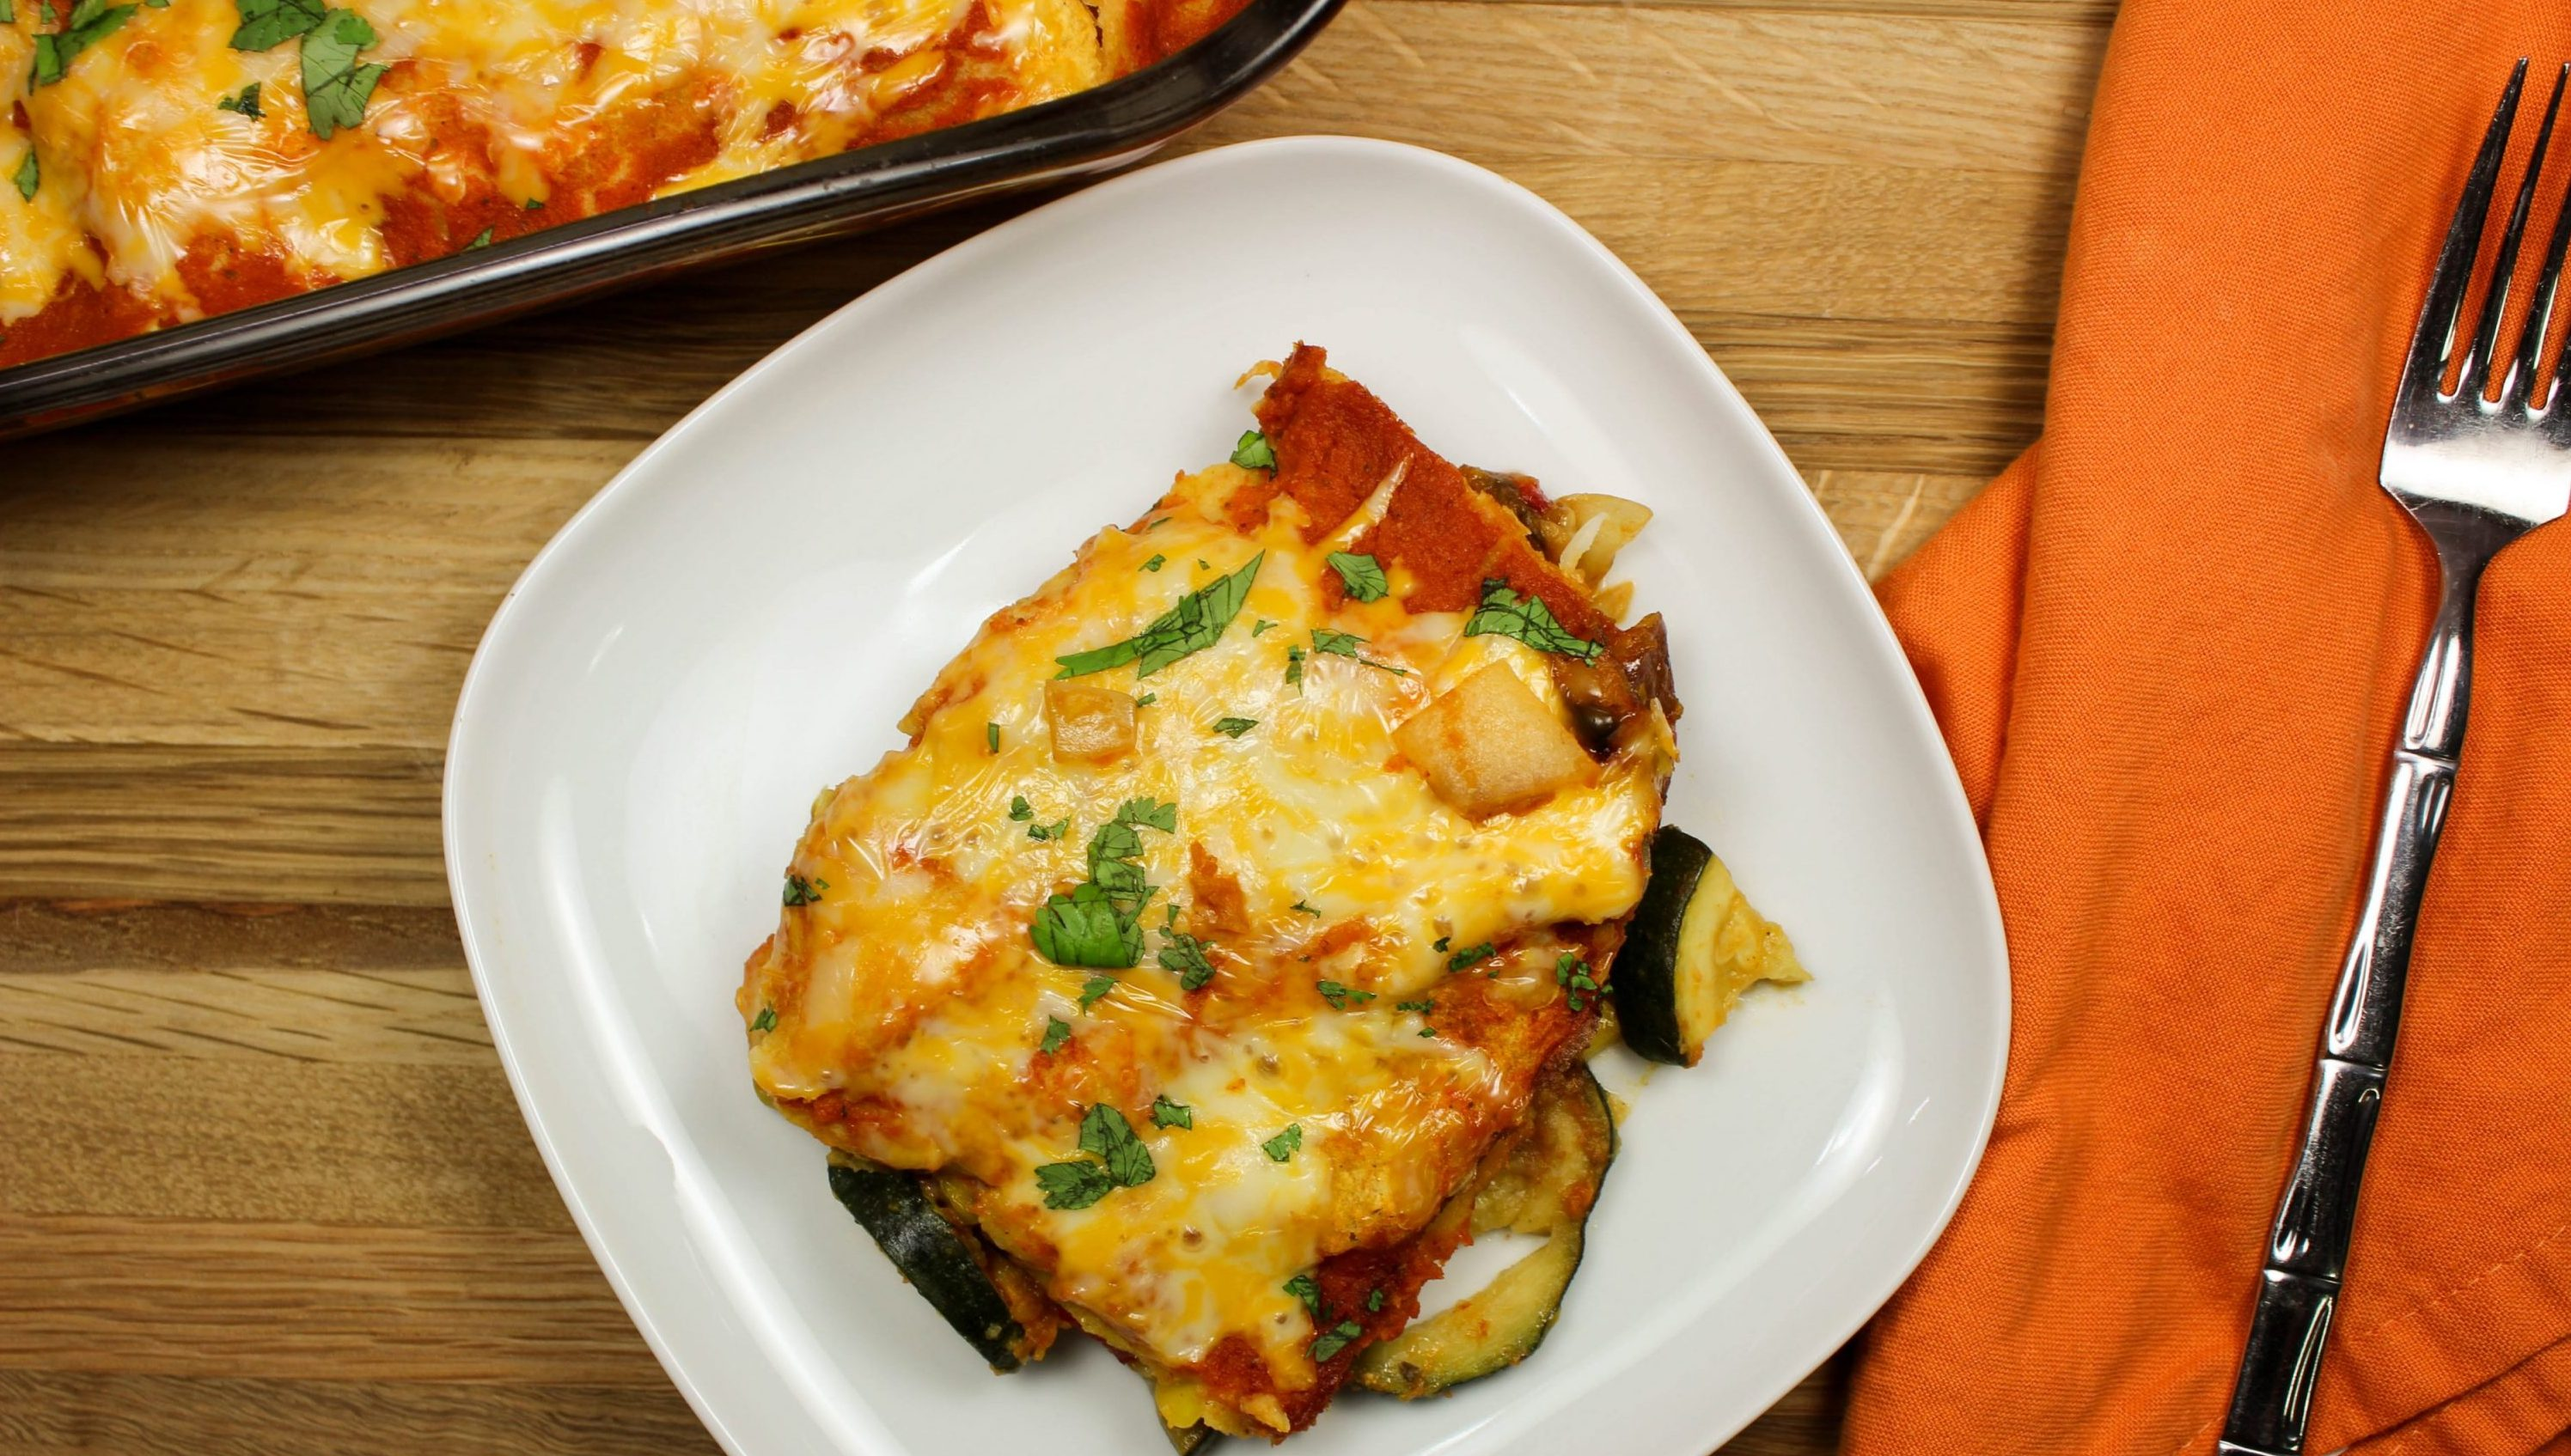 Cheesy Vegetable Enchilada Casserole-Everything you love about enchiladas. Layers of enchilada sauce, delicious seasoned vegetables, & tortillas topped with cheese. Great to feed a crowd & makes for amazing leftovers! Full of flavor & low fat. Weight Watchers friendly